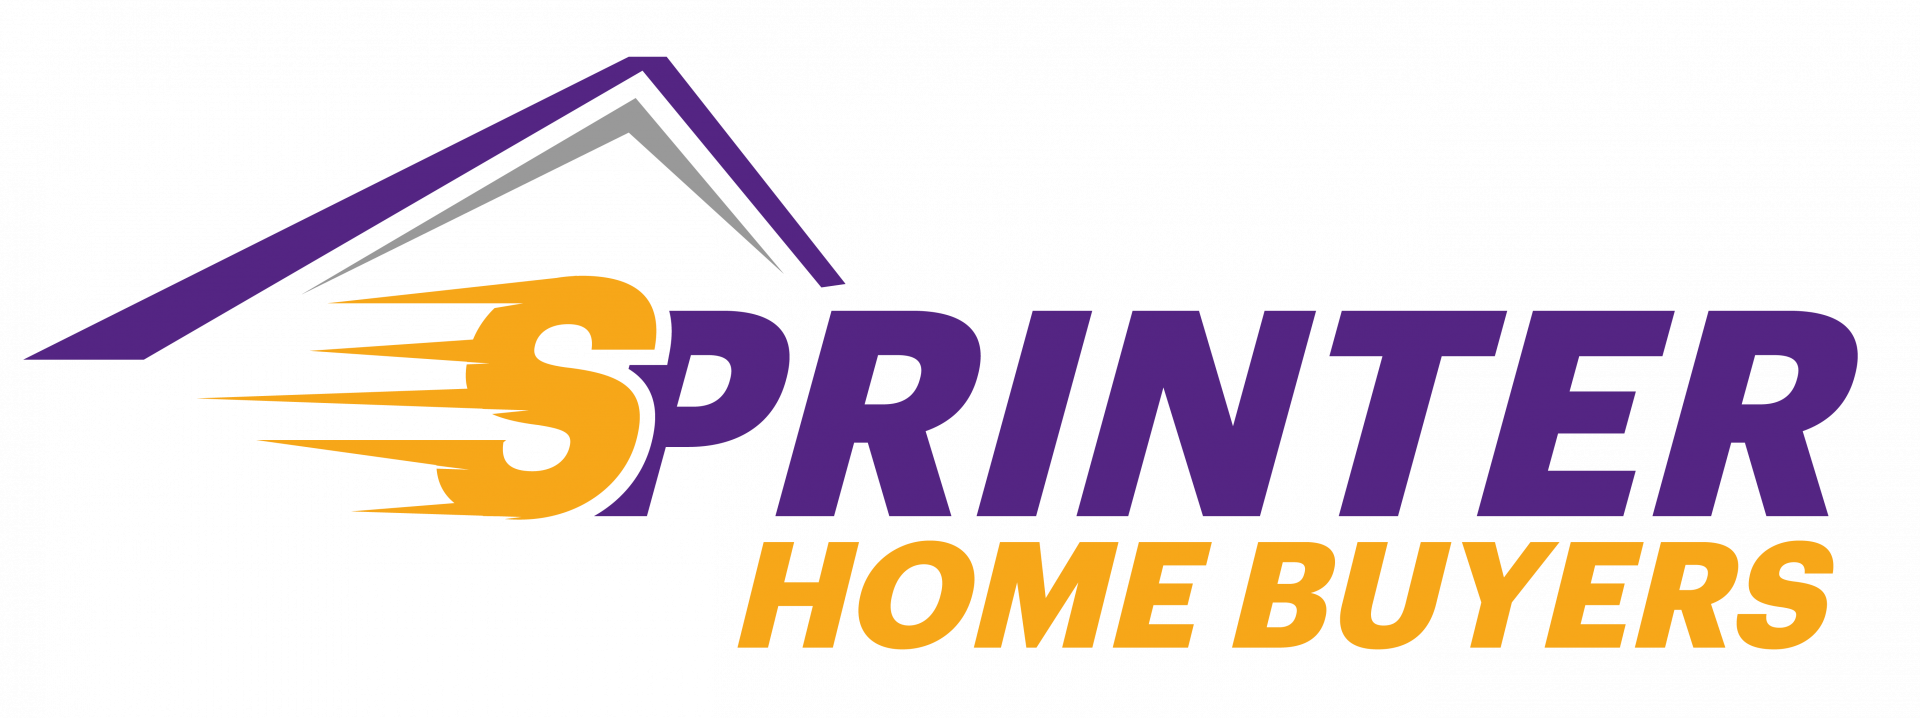 Sprinter Home Buyers  logo